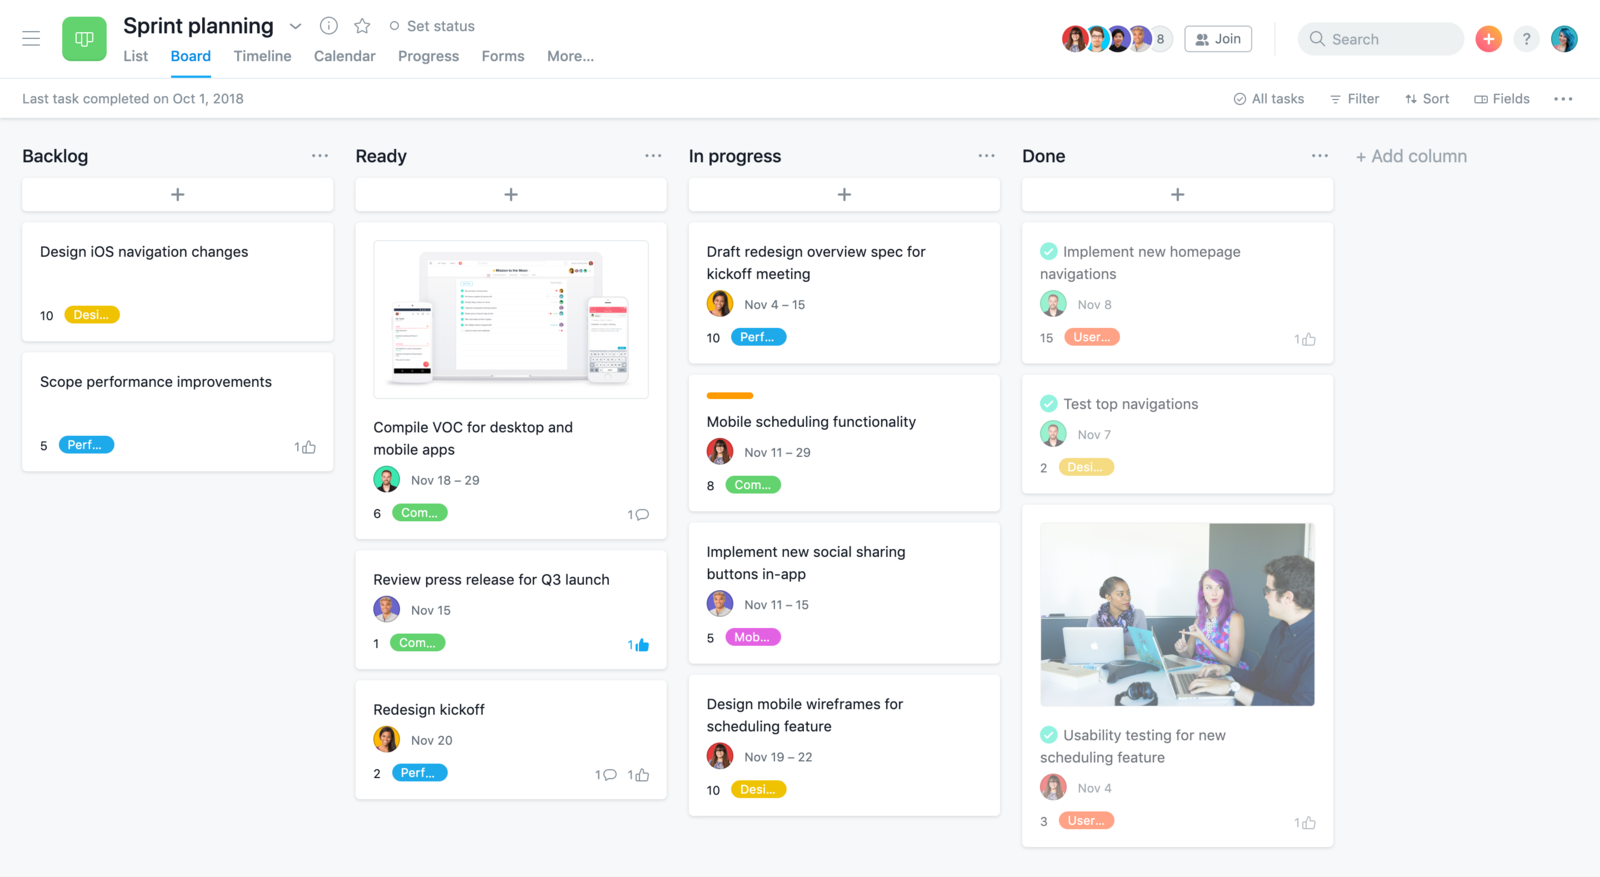 Plan your sprints in Asana with boards